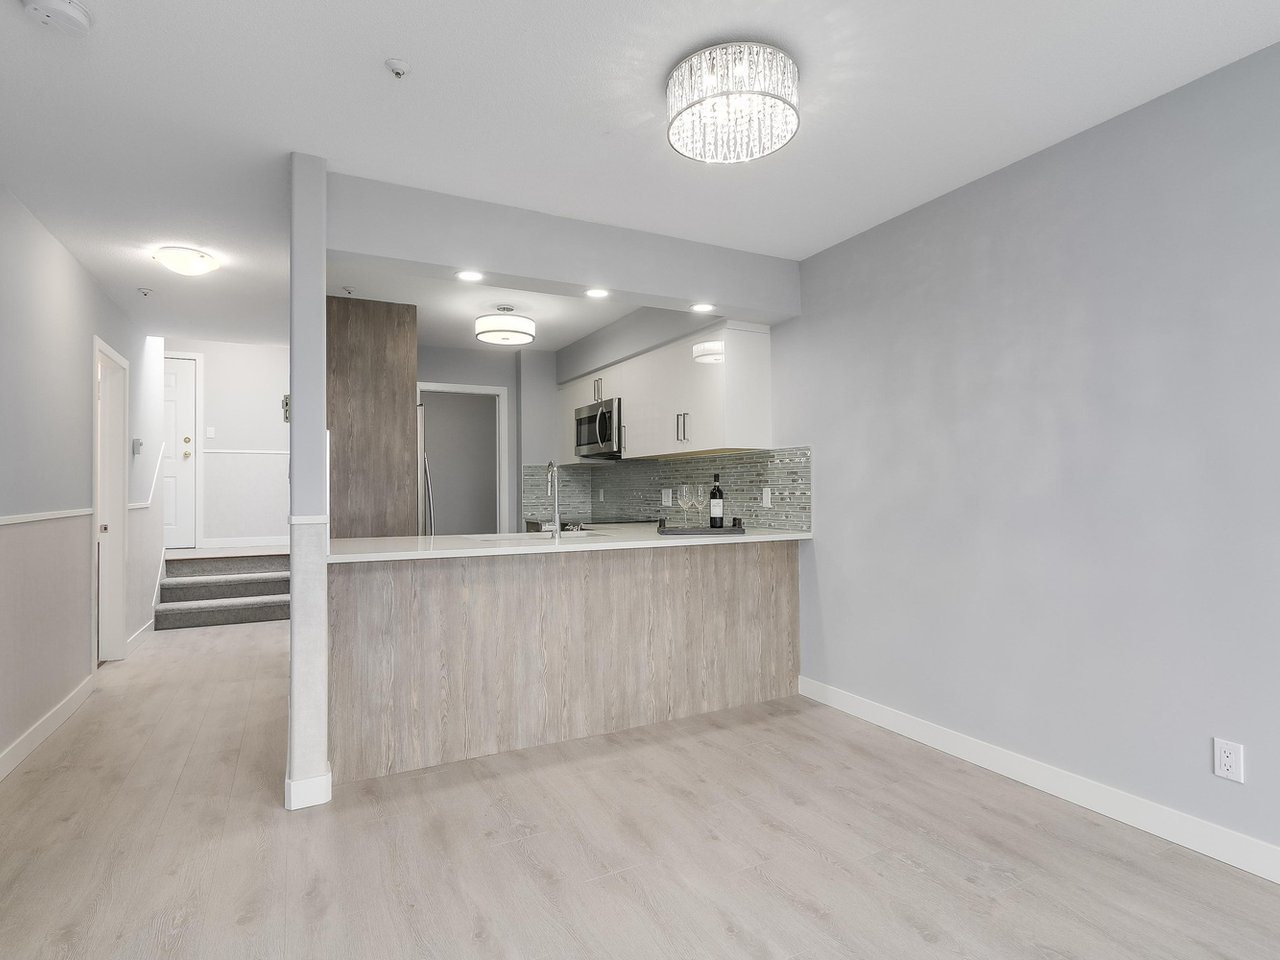 Condo Apartment at 312 4893 CLARENDON STREET, Unit 312, Vancouver East, British Columbia. Image 7